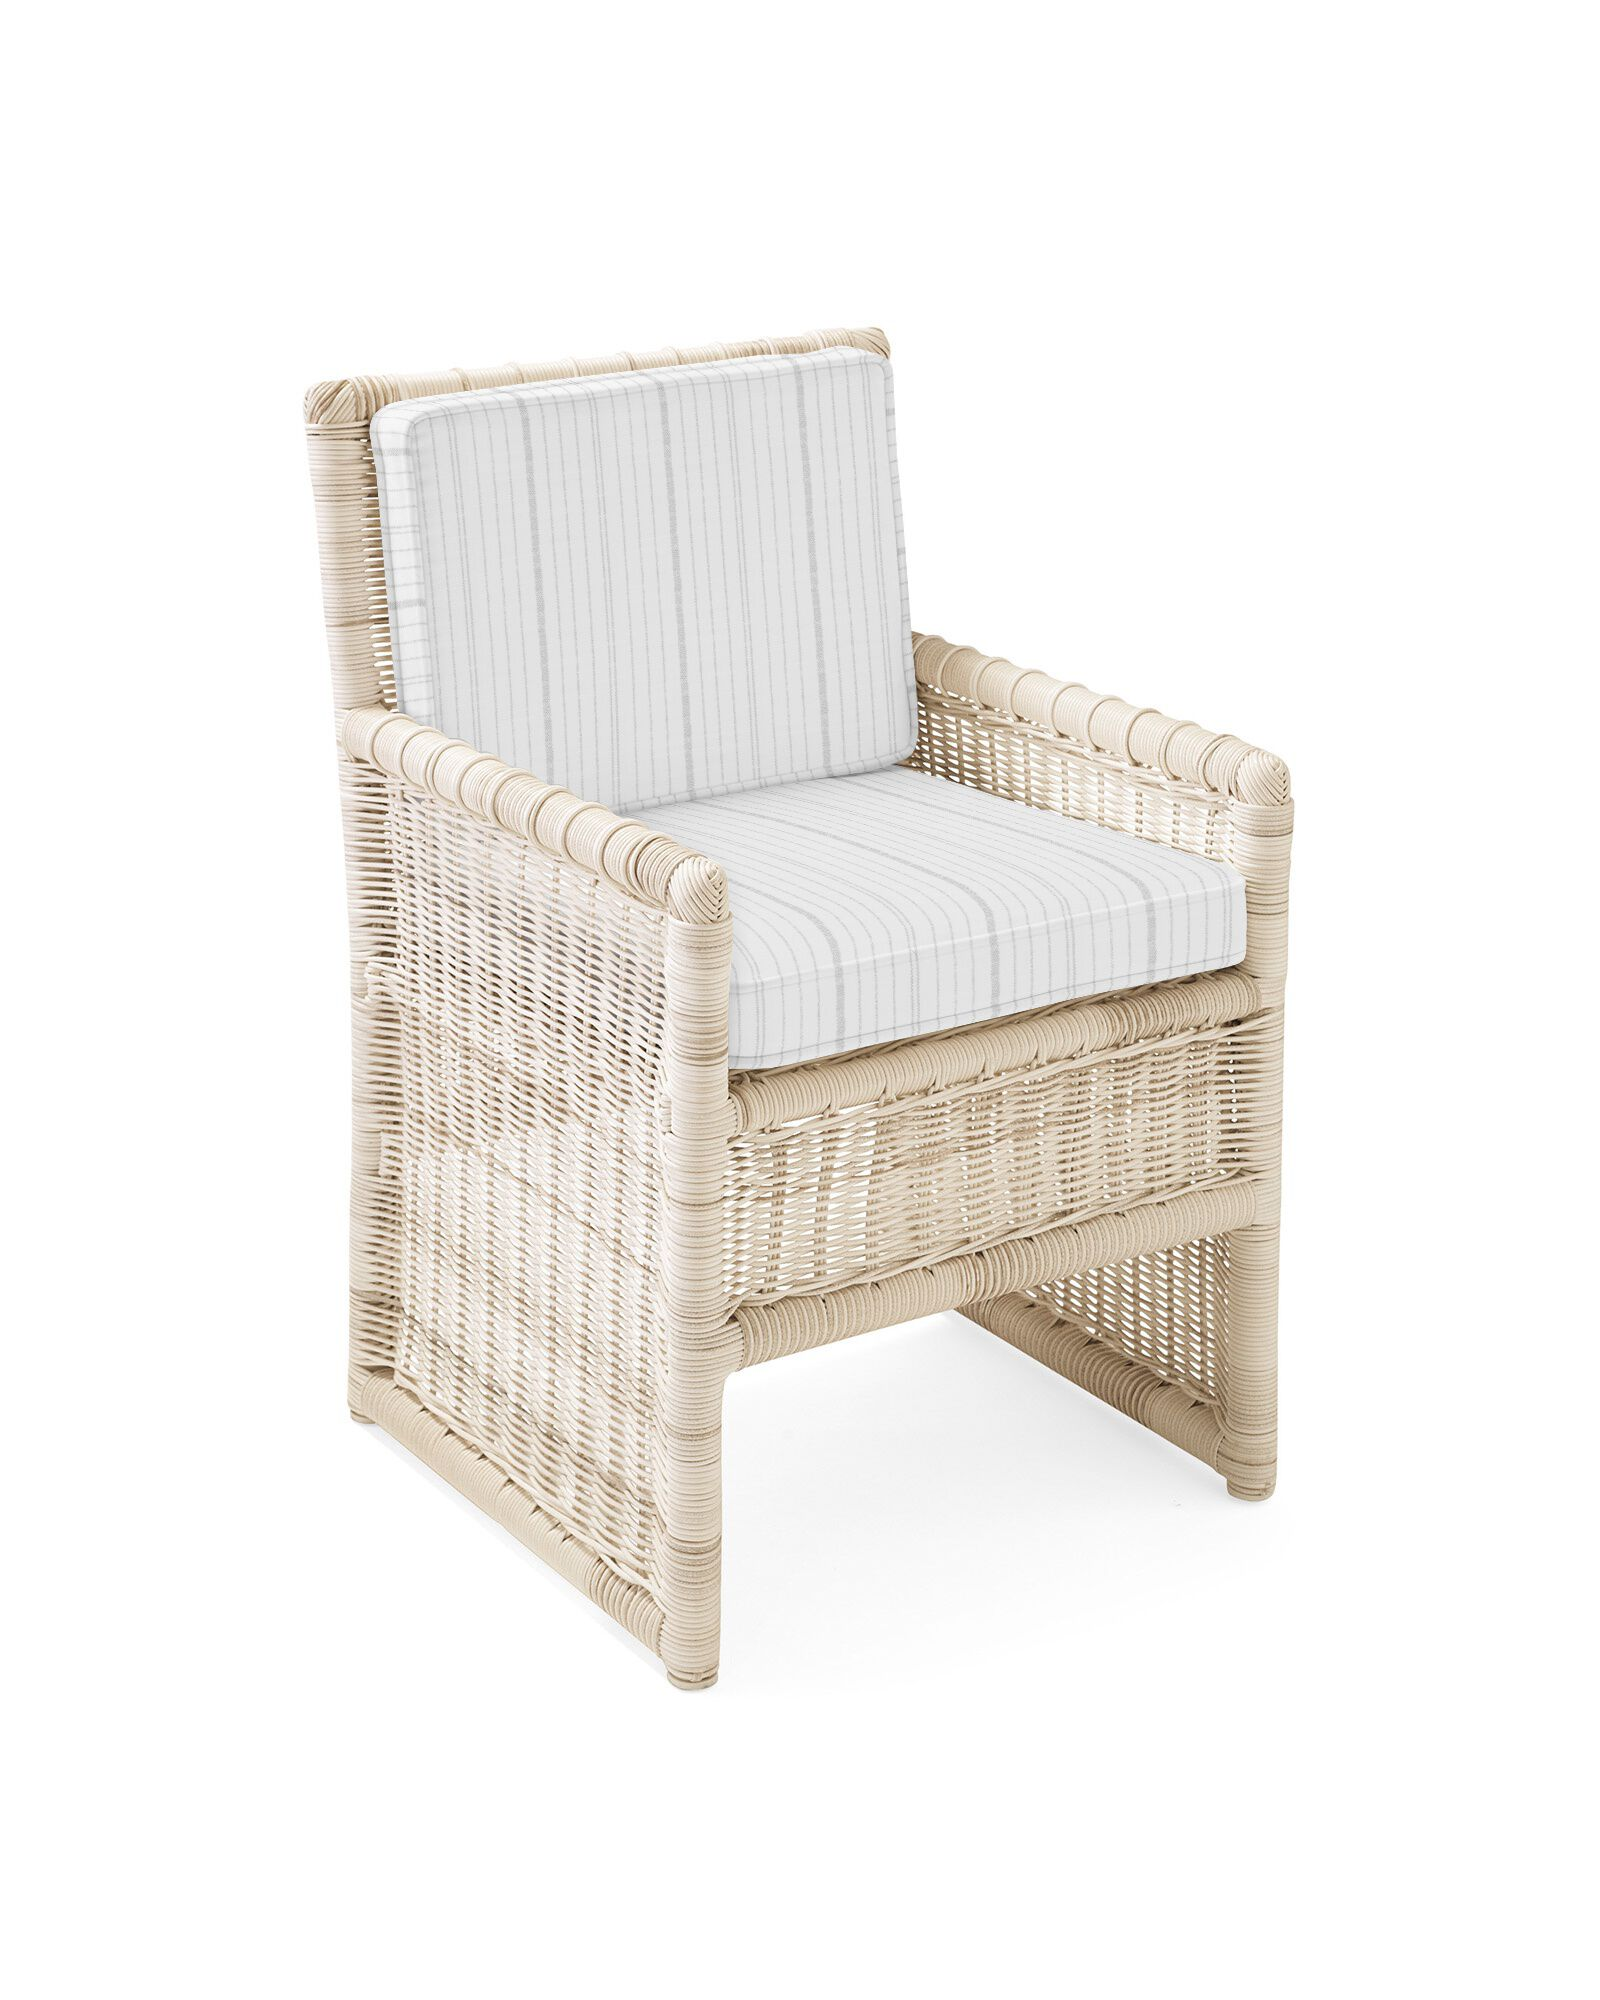 Cushion Cover for Pacifica Dining Chair, Surf Stripe Smoke